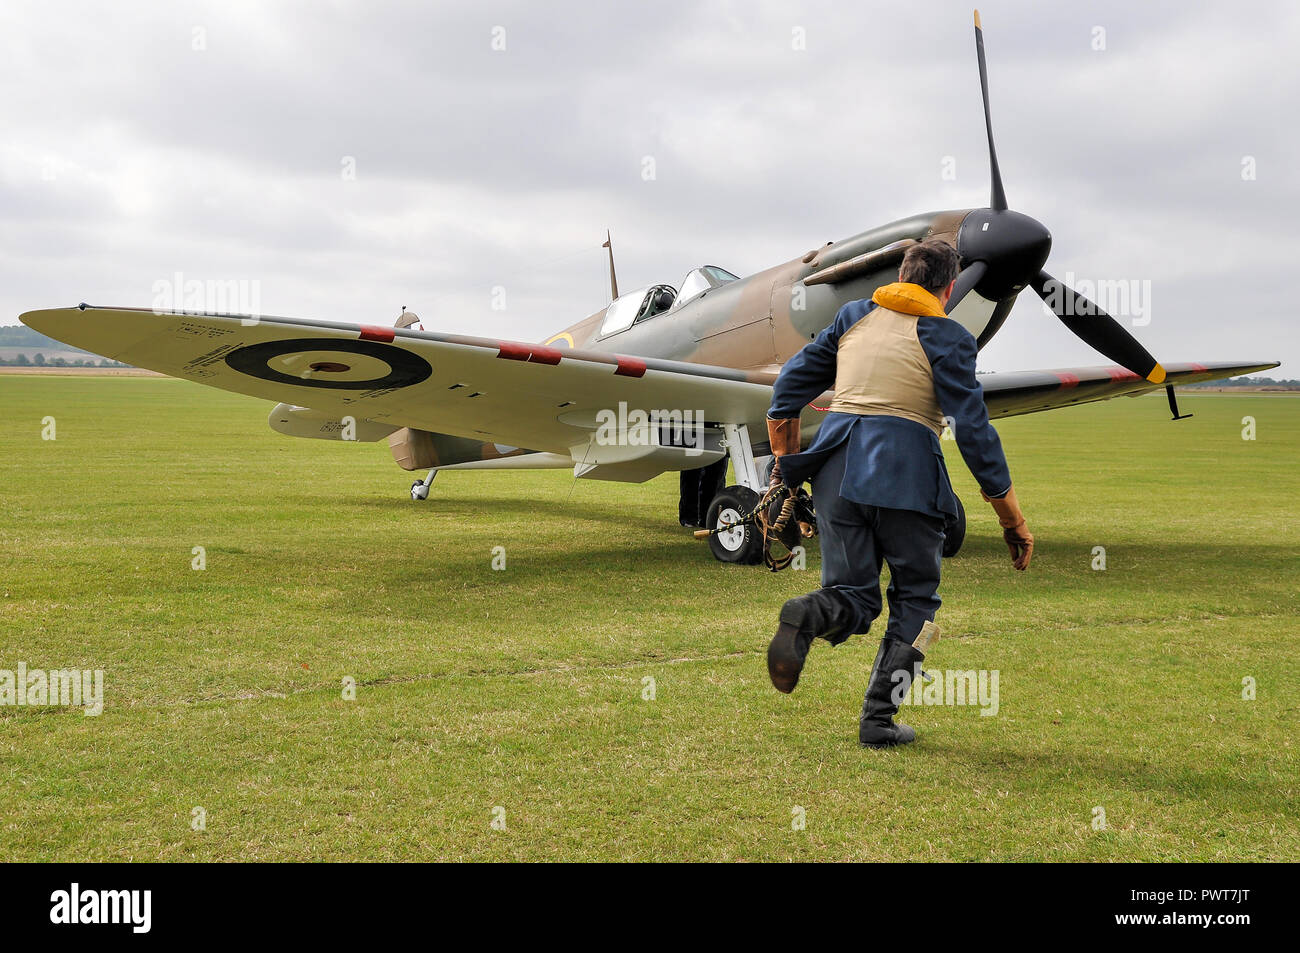 World War Two Raf Spitfire Pilot Stock Photos & World War ...